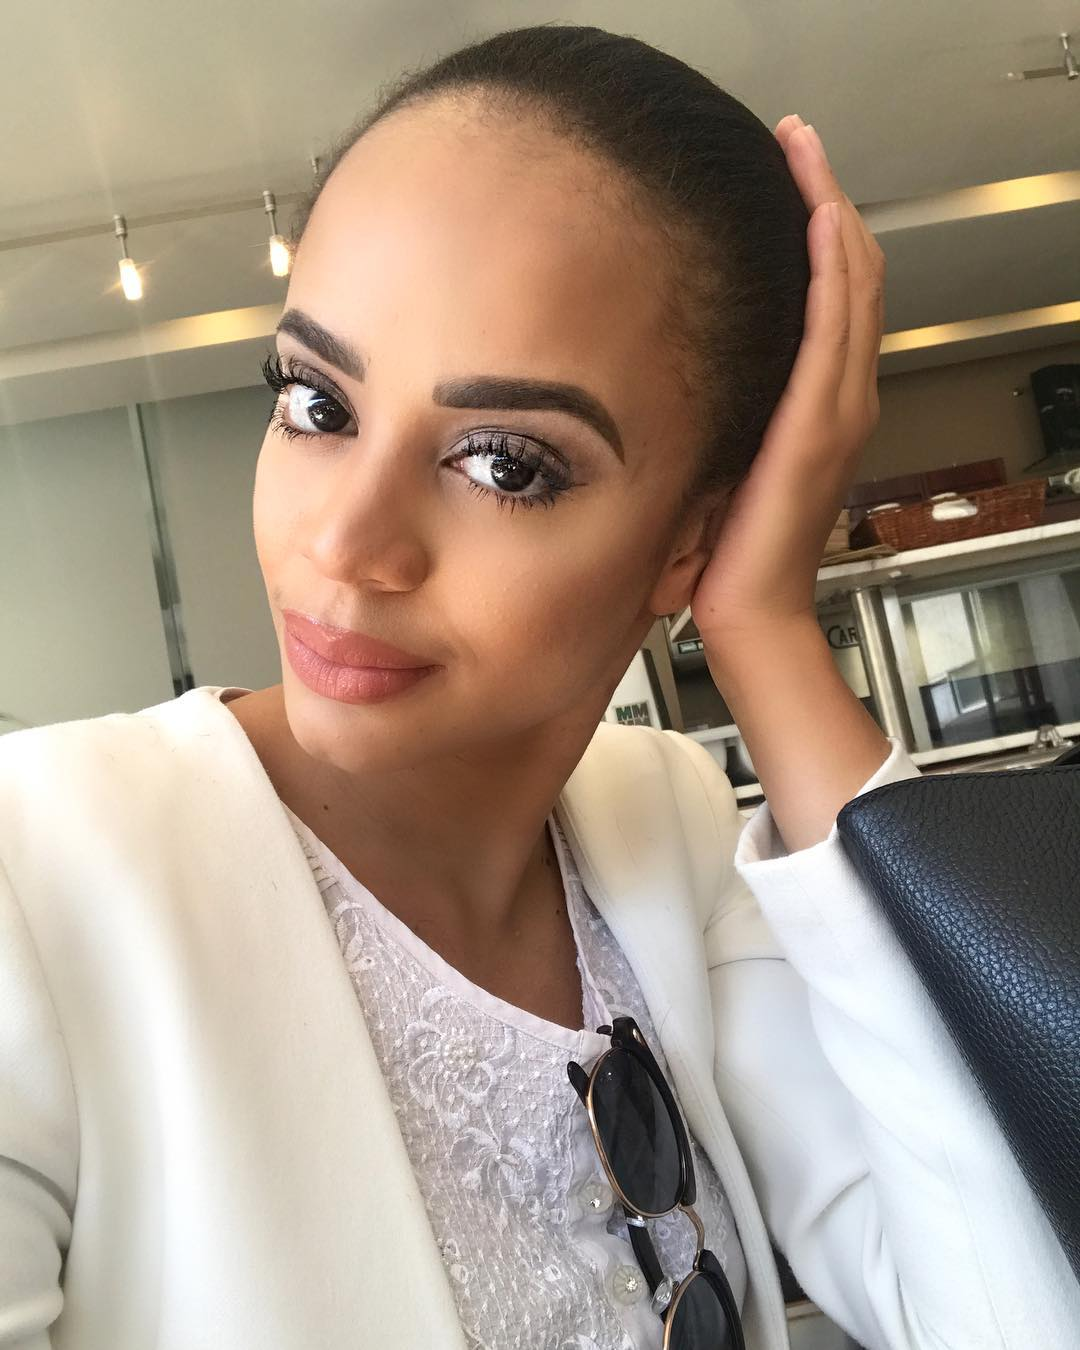 Joburg's real housewives features former Miss Botswana finalist   Botswana Youth Magazine